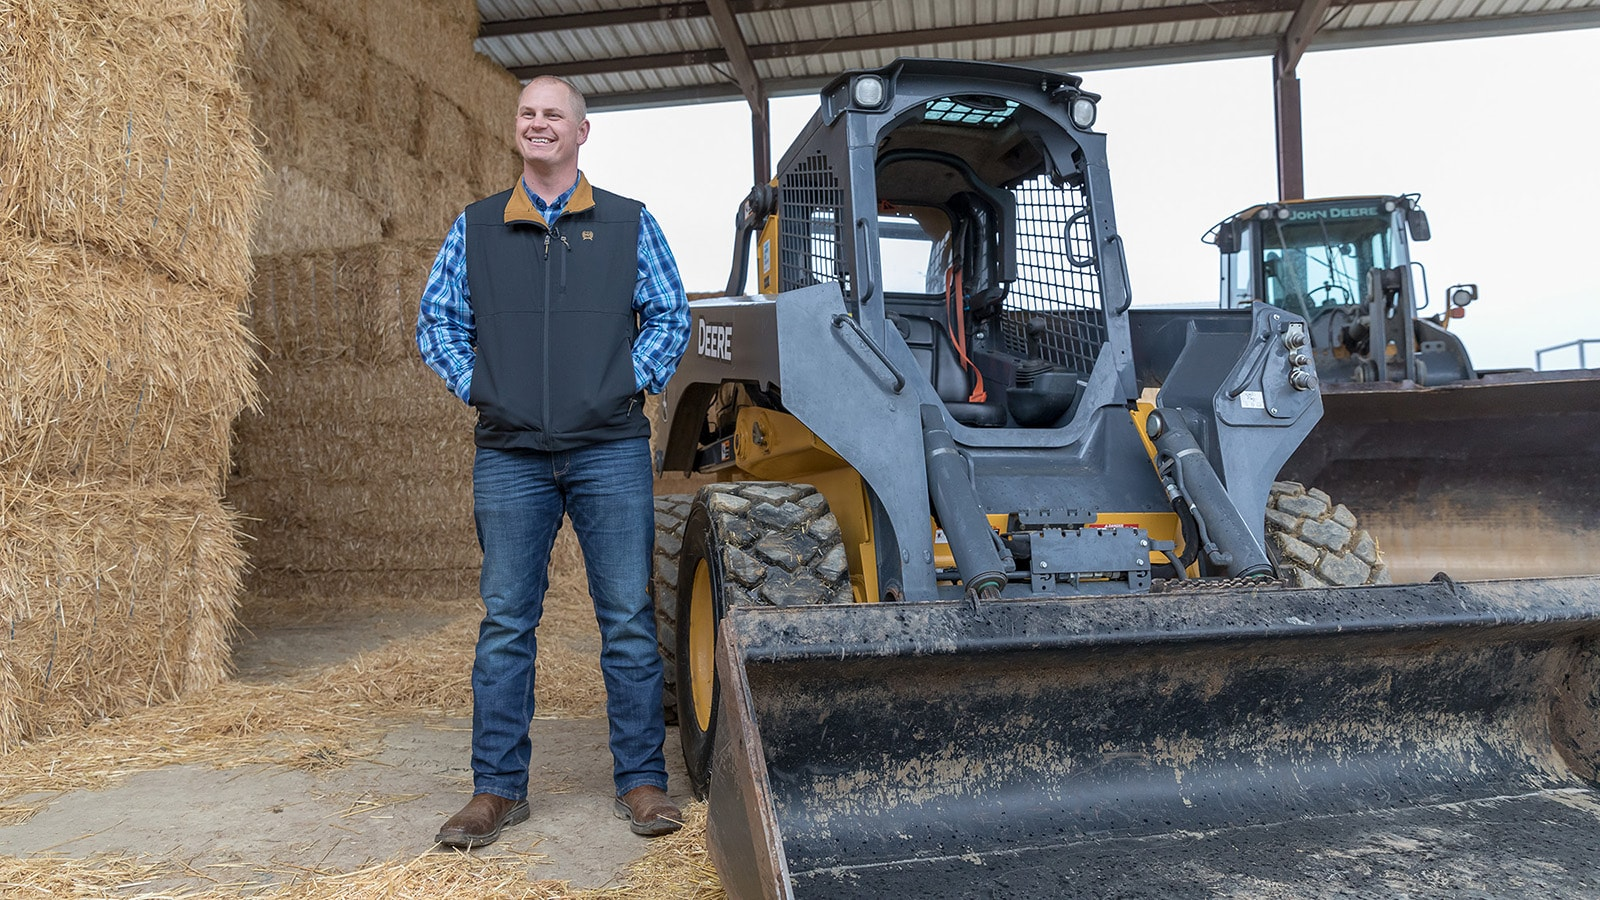 John Verwey stands next to his 332G Skid Steer with bales of hay in the background